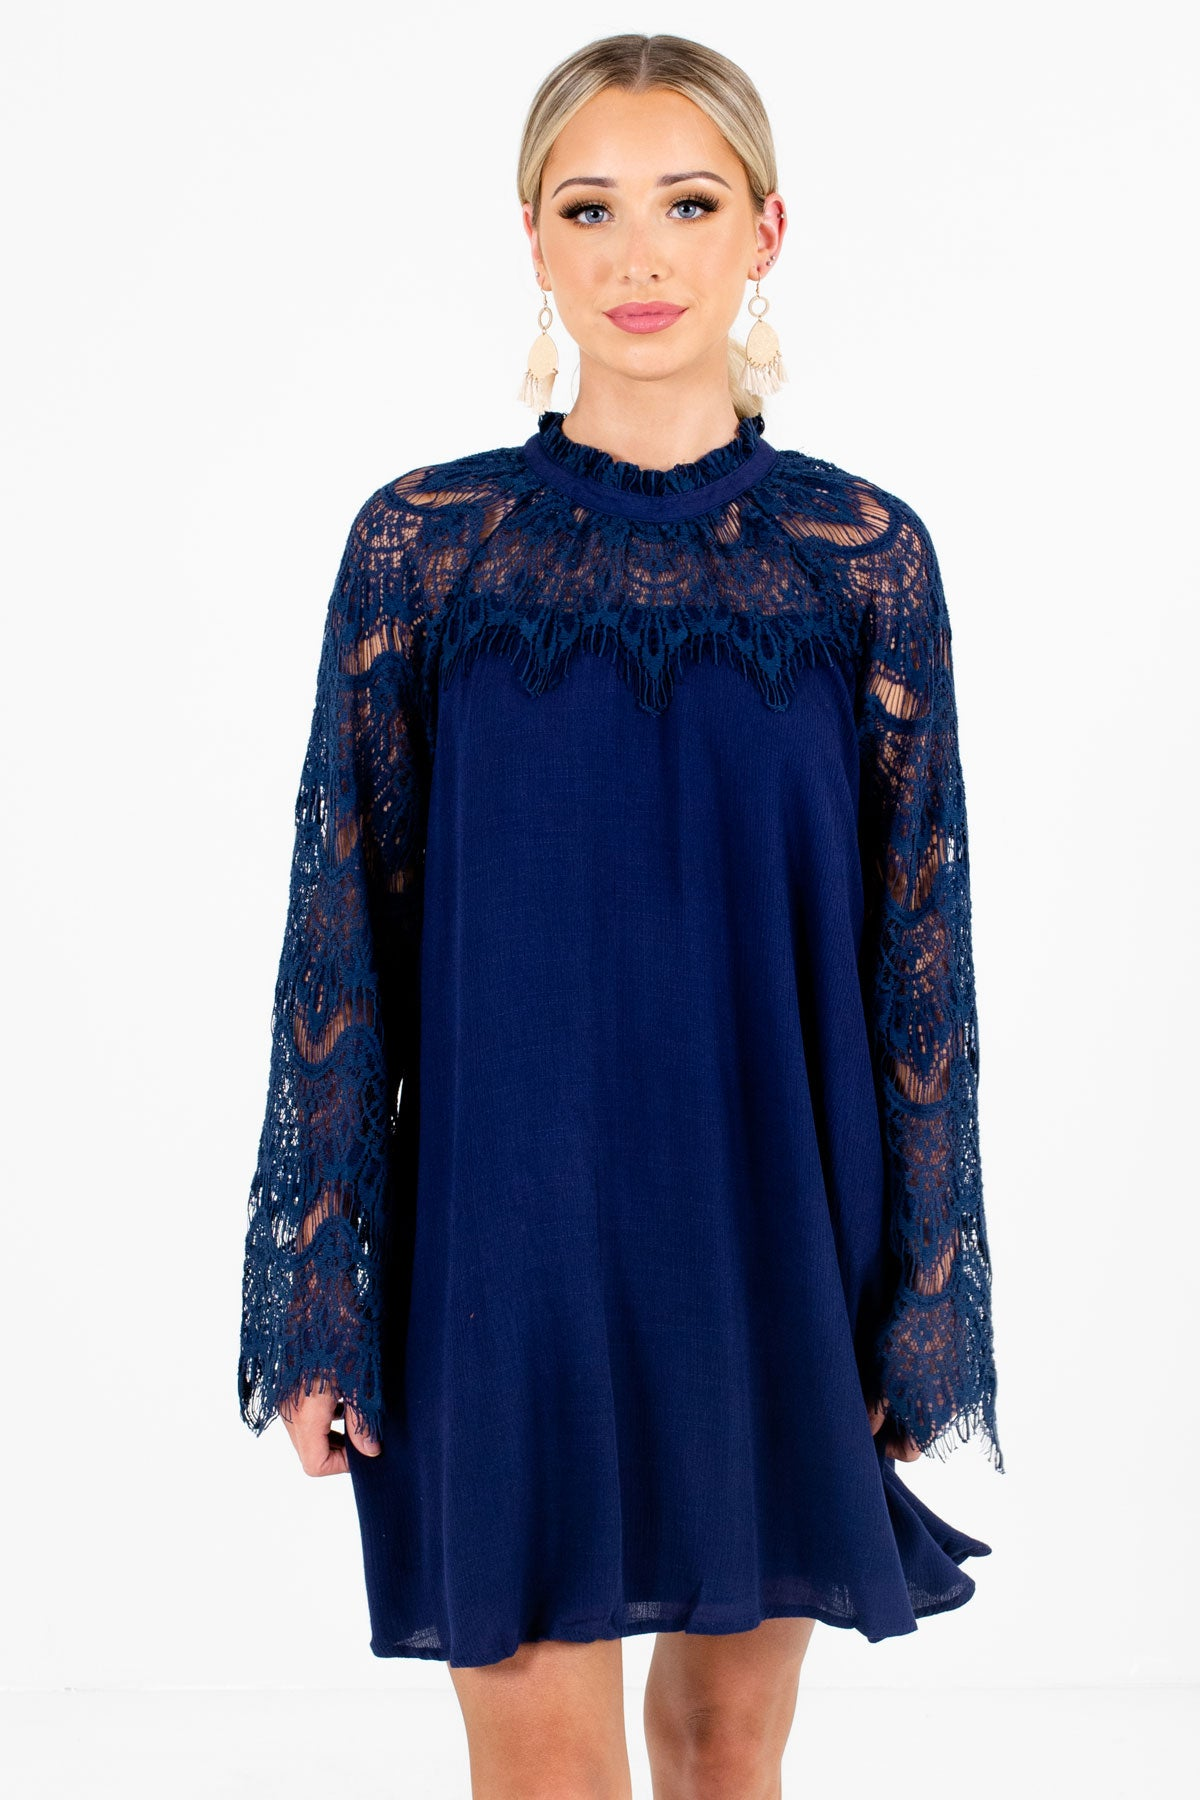 Blue High-Quality Lace Material Boutique Mini Dresses for Women